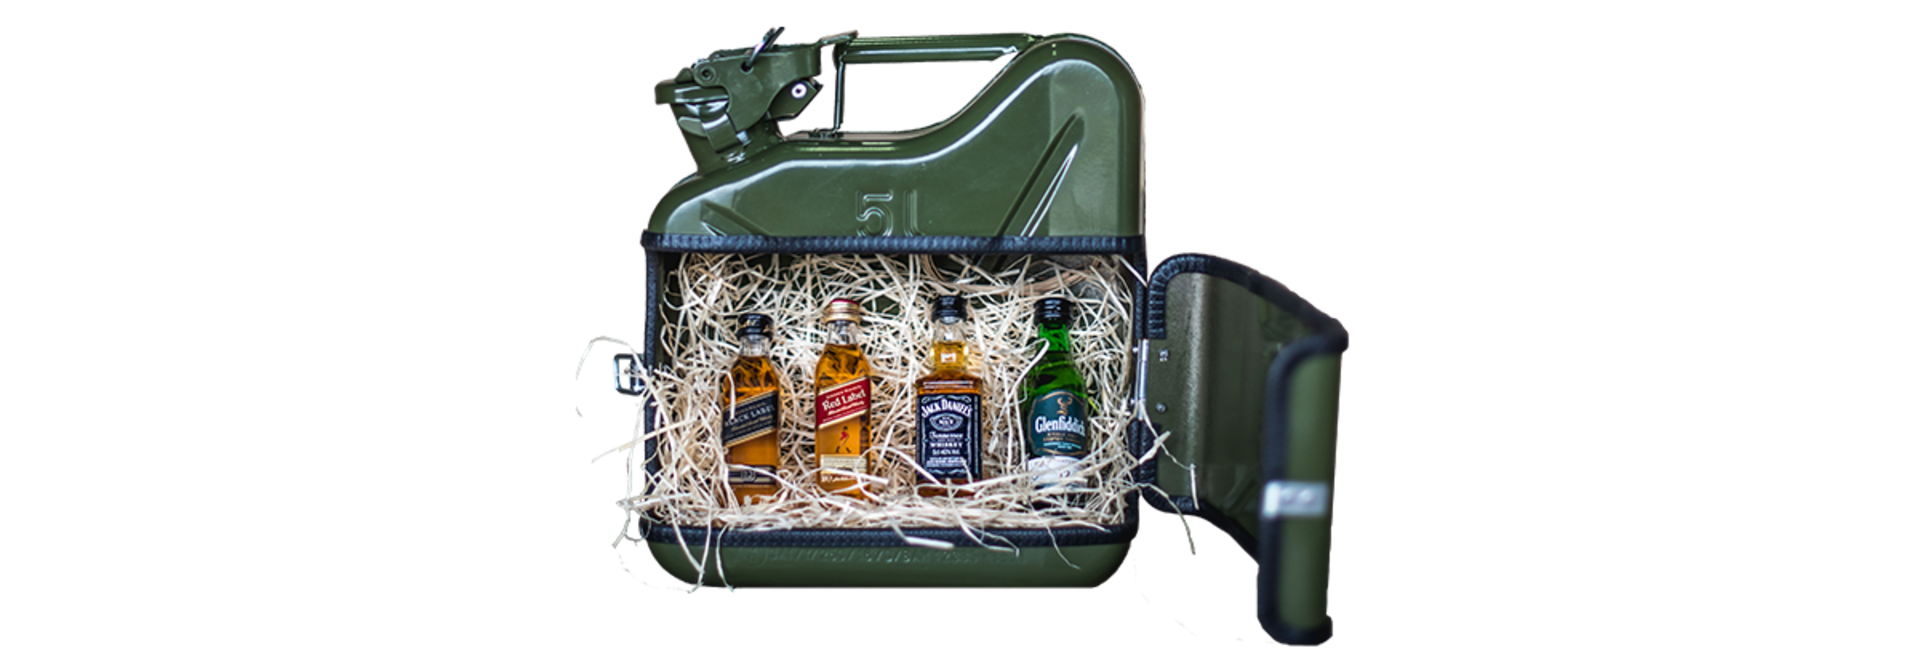 Jerrycan 5L package